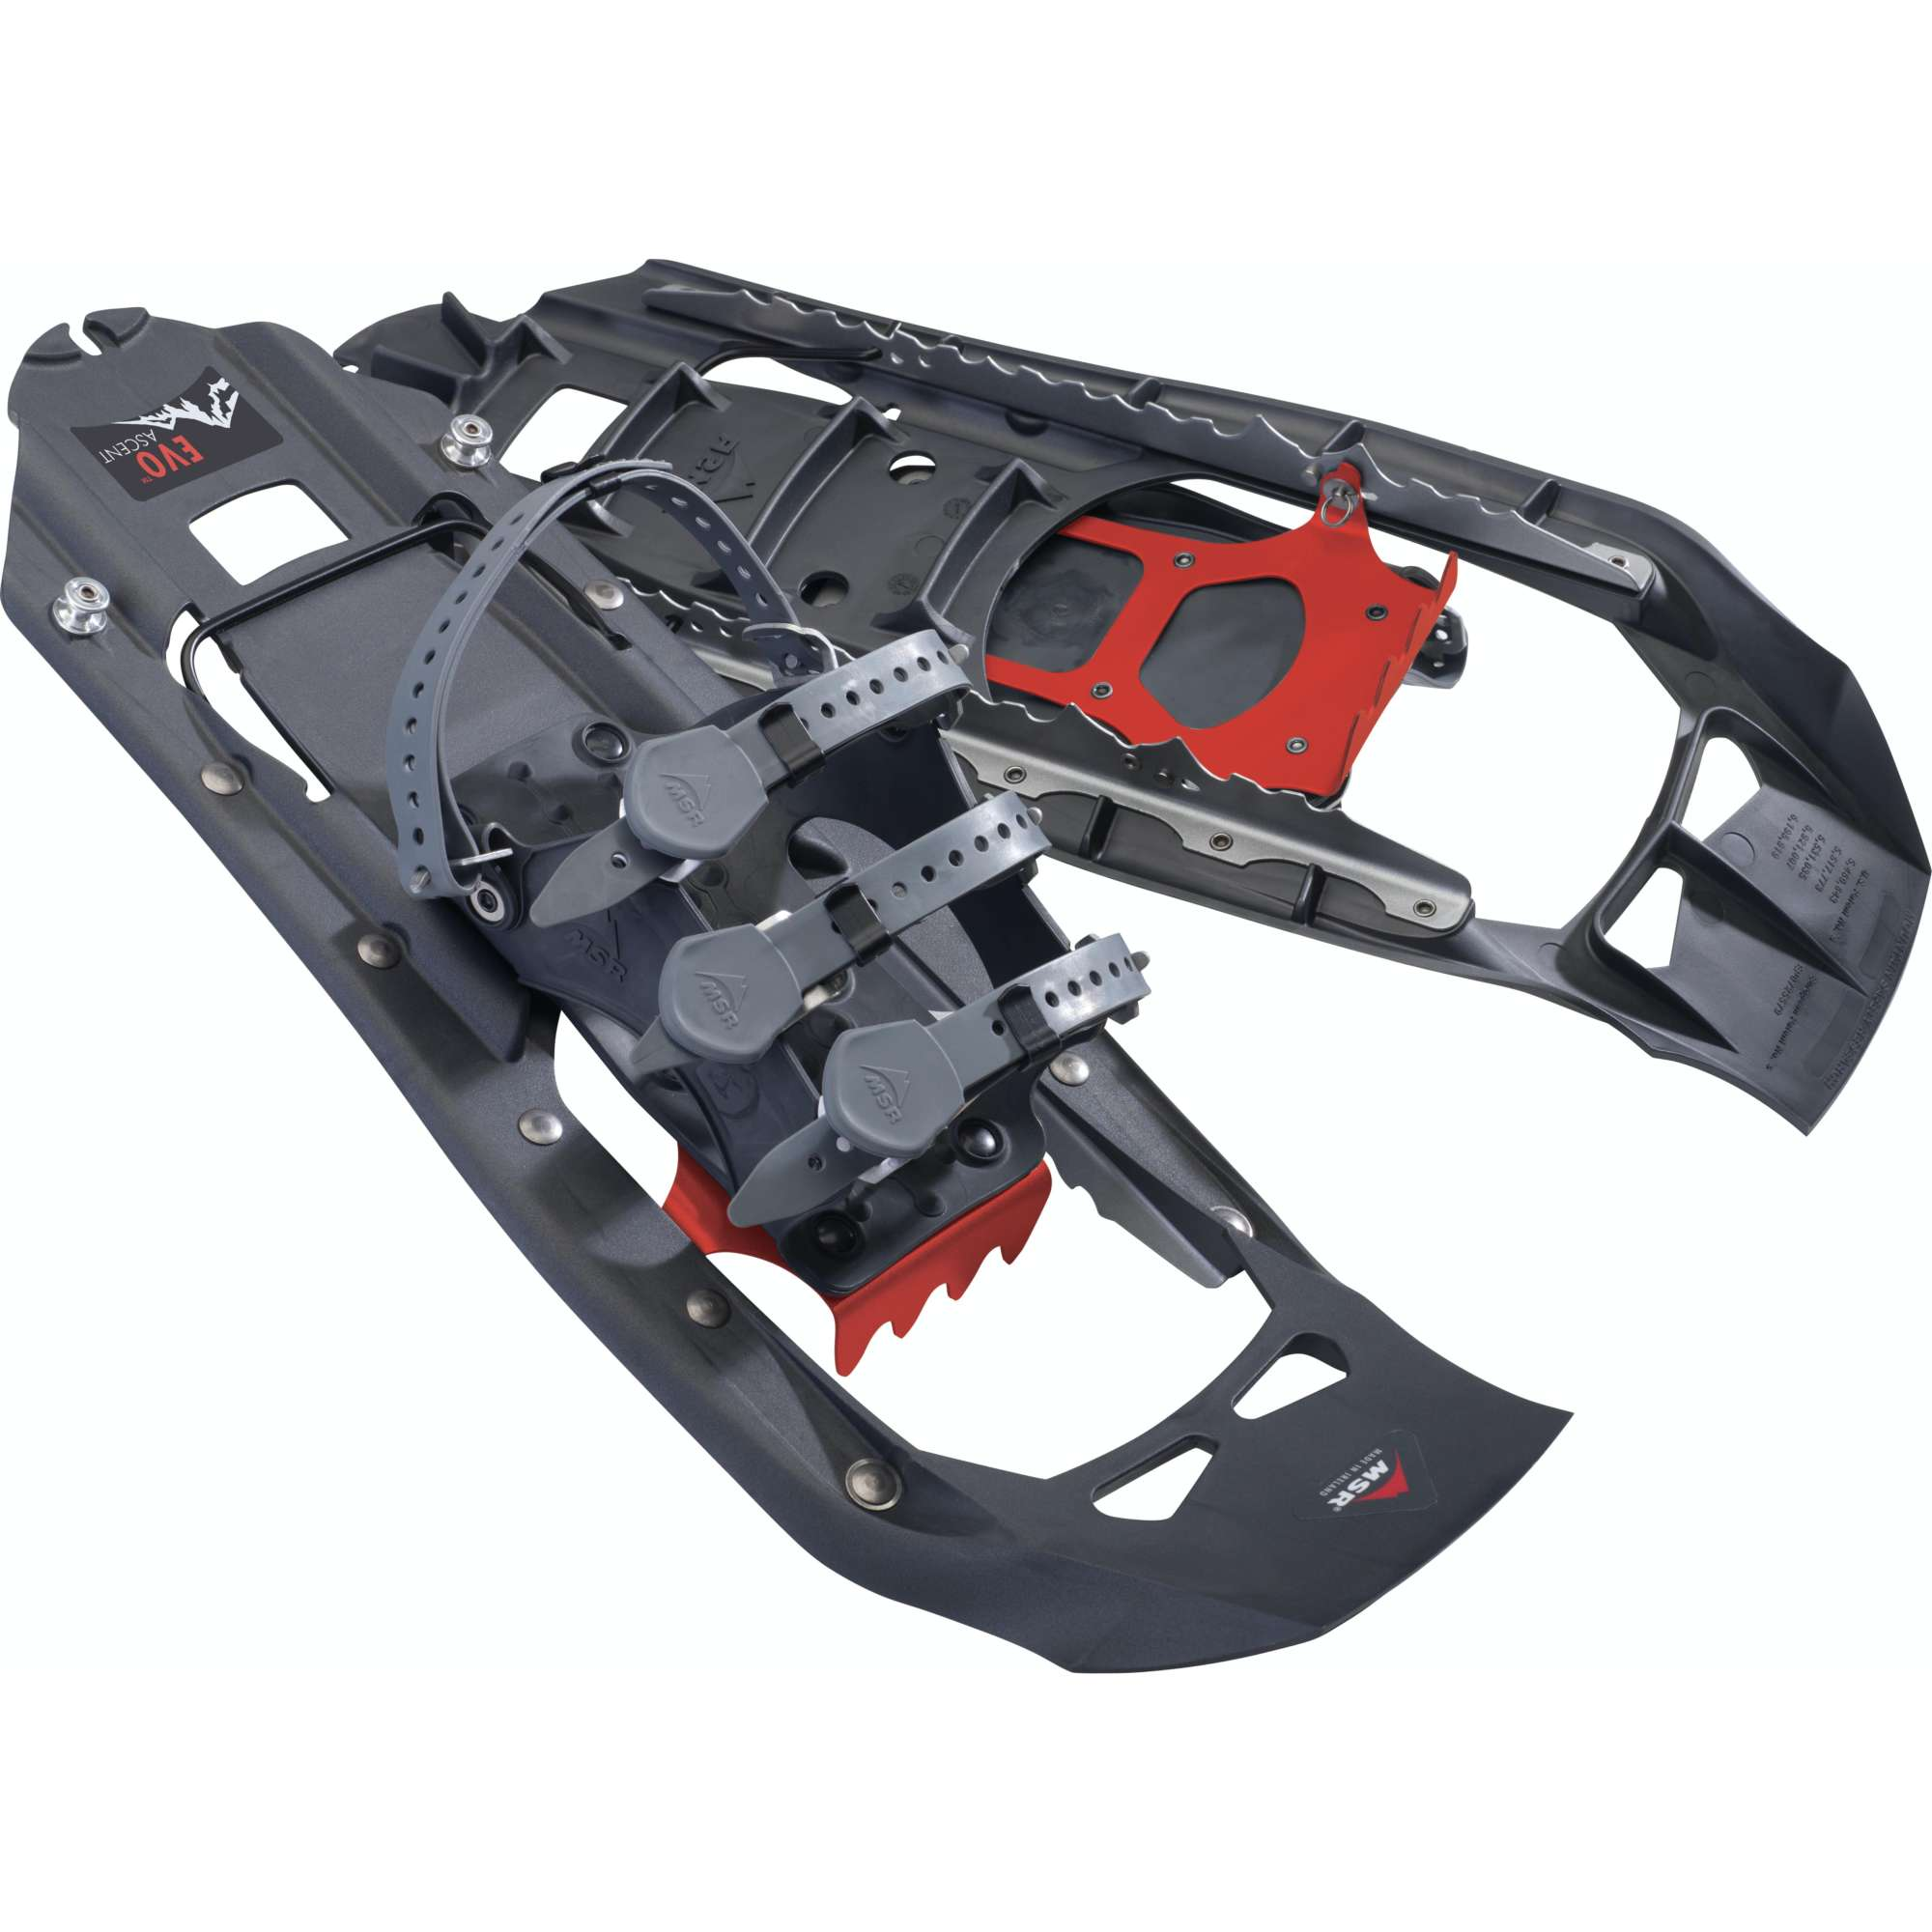 Mission-Ready-MSR-Evo-Ascent-Snowshoe-Kit-snowshoes-top-and-bottom